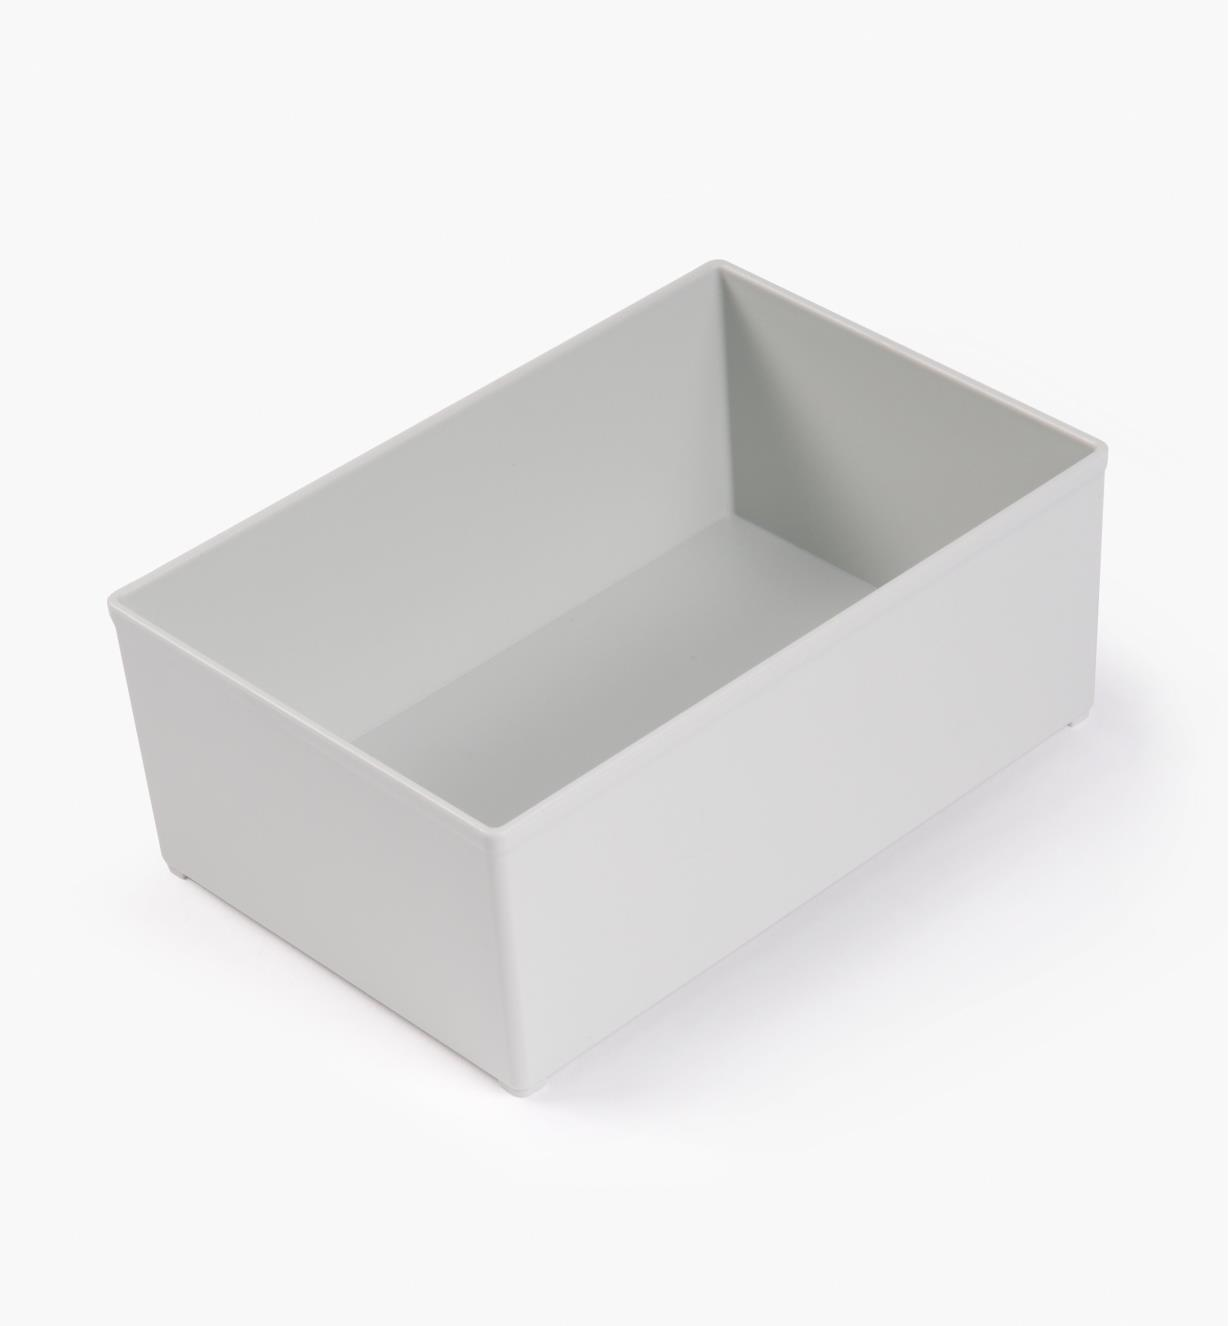 68K4519 - Extra 179mm x 119mm Large Bin for Systainer Storage Box, each